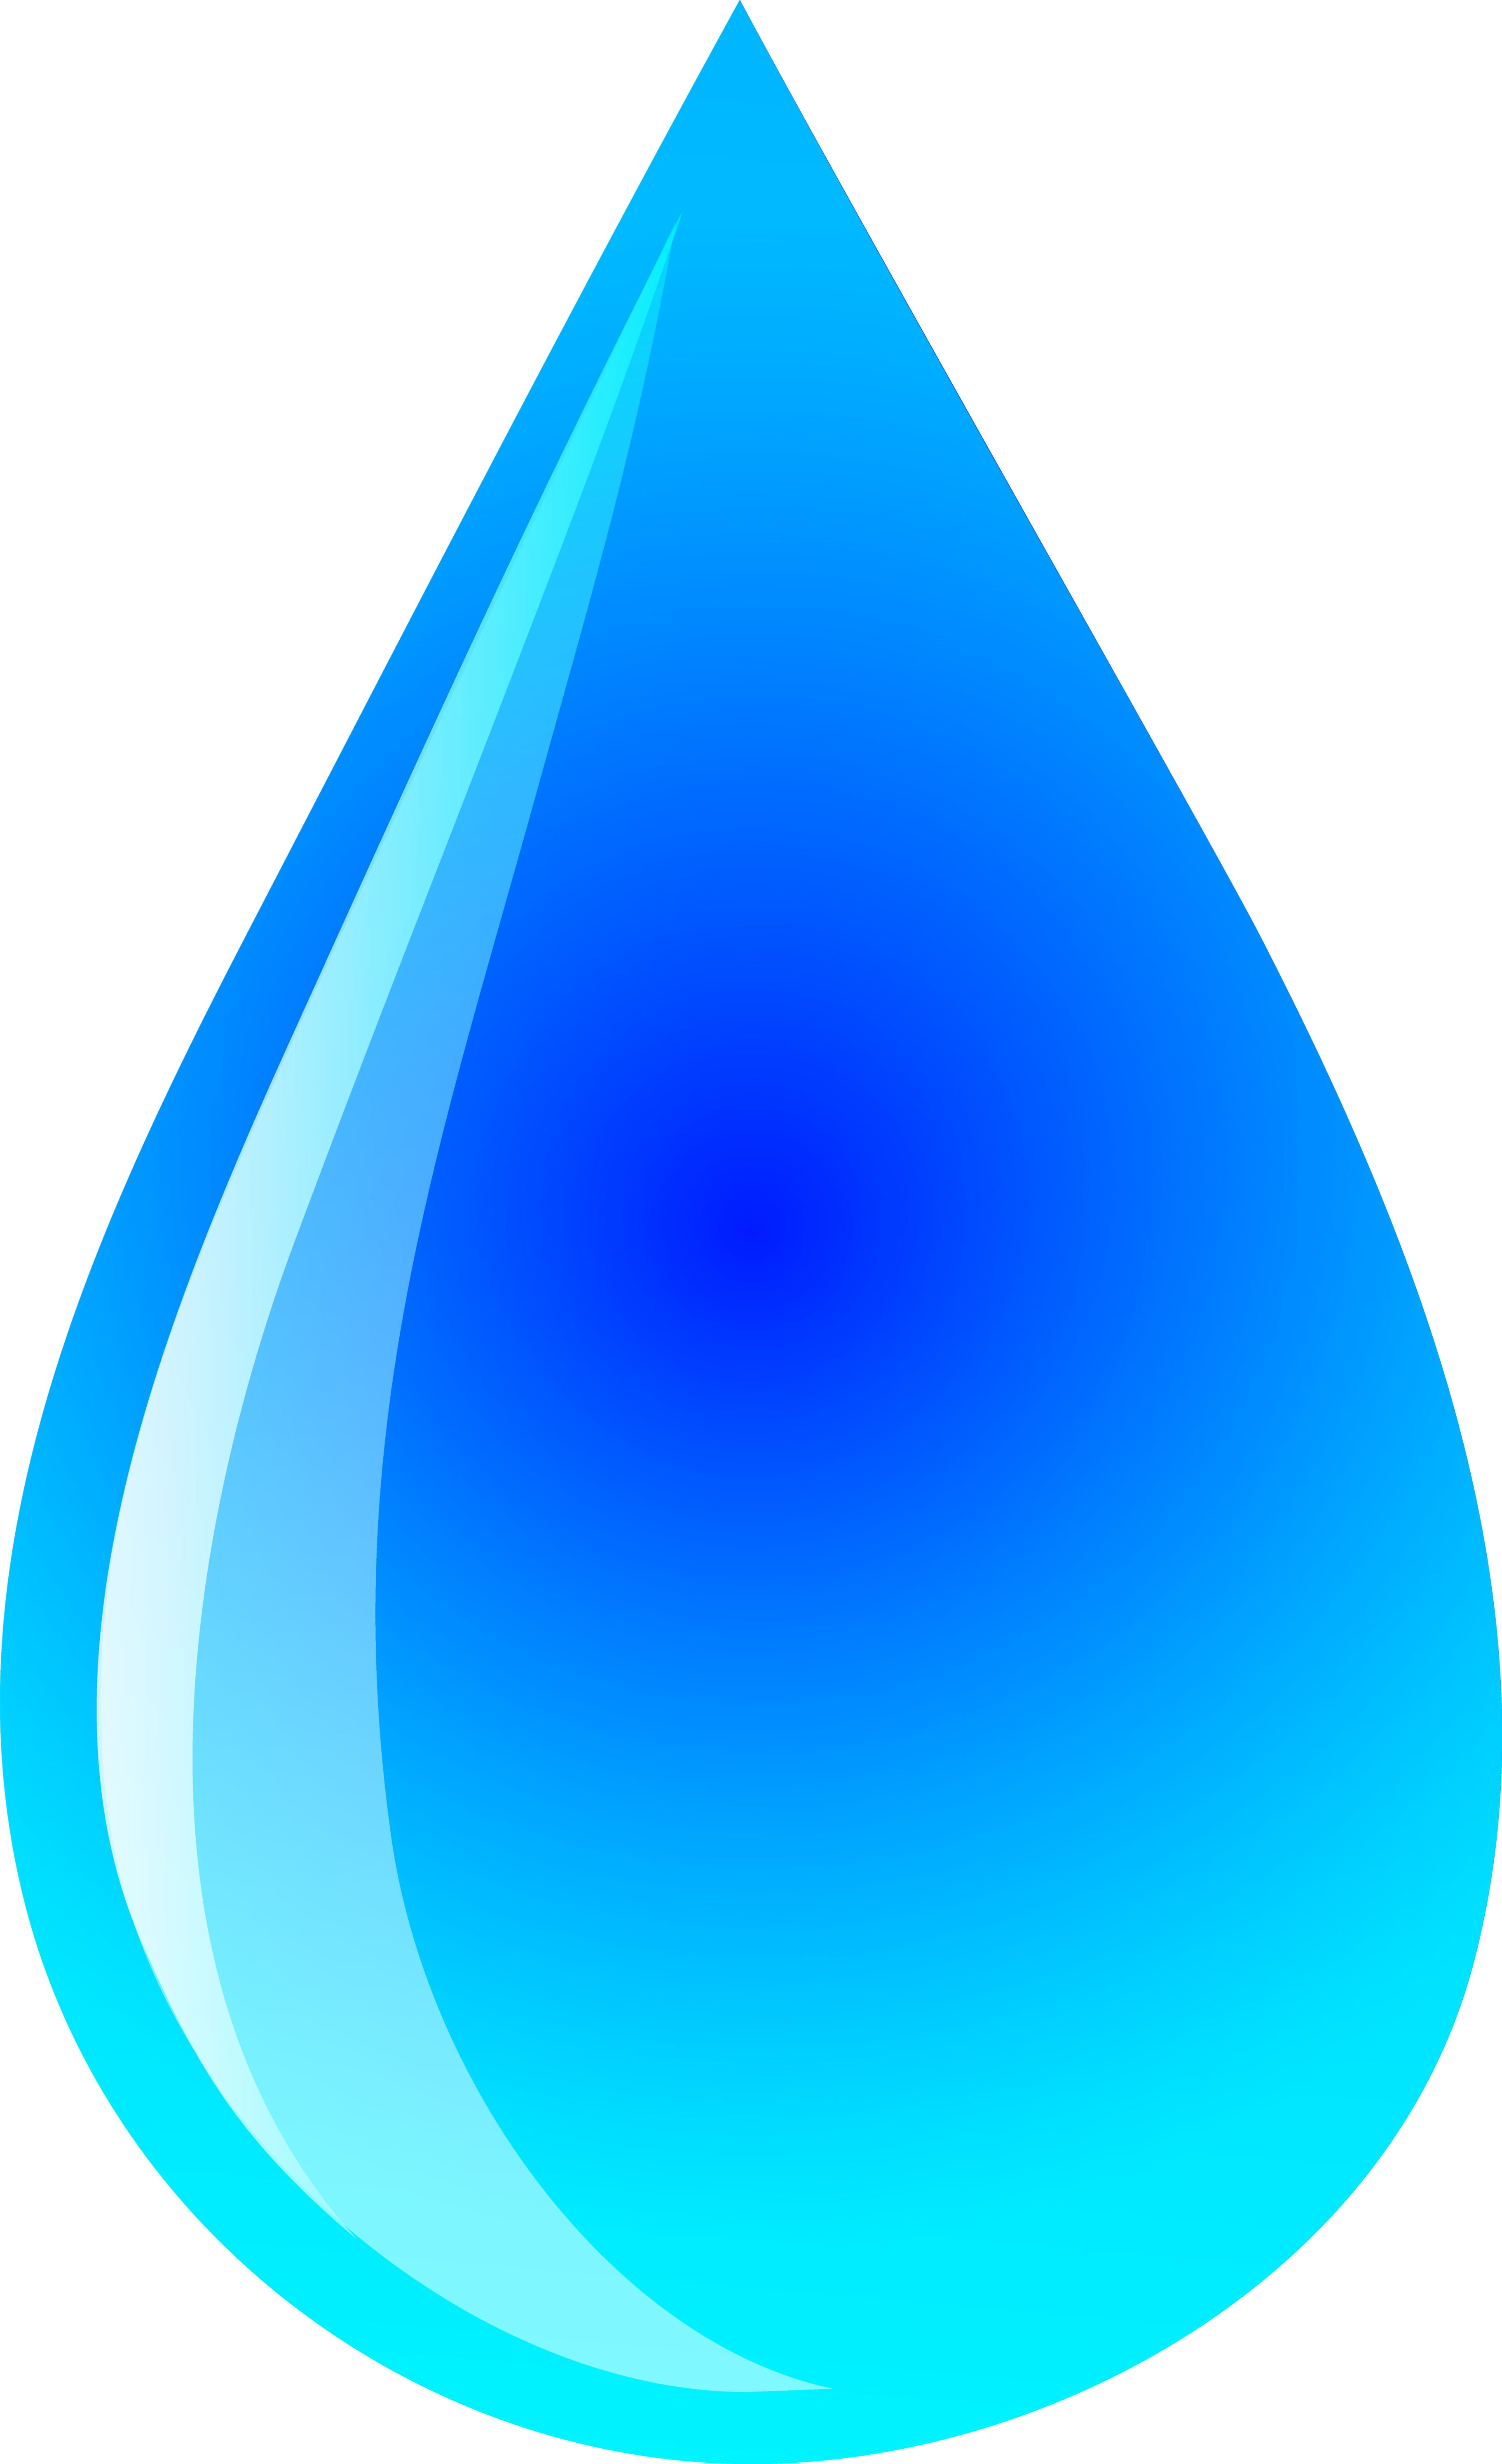 Water Droplets clipart teardrop 80 Water Clipart Free Clip